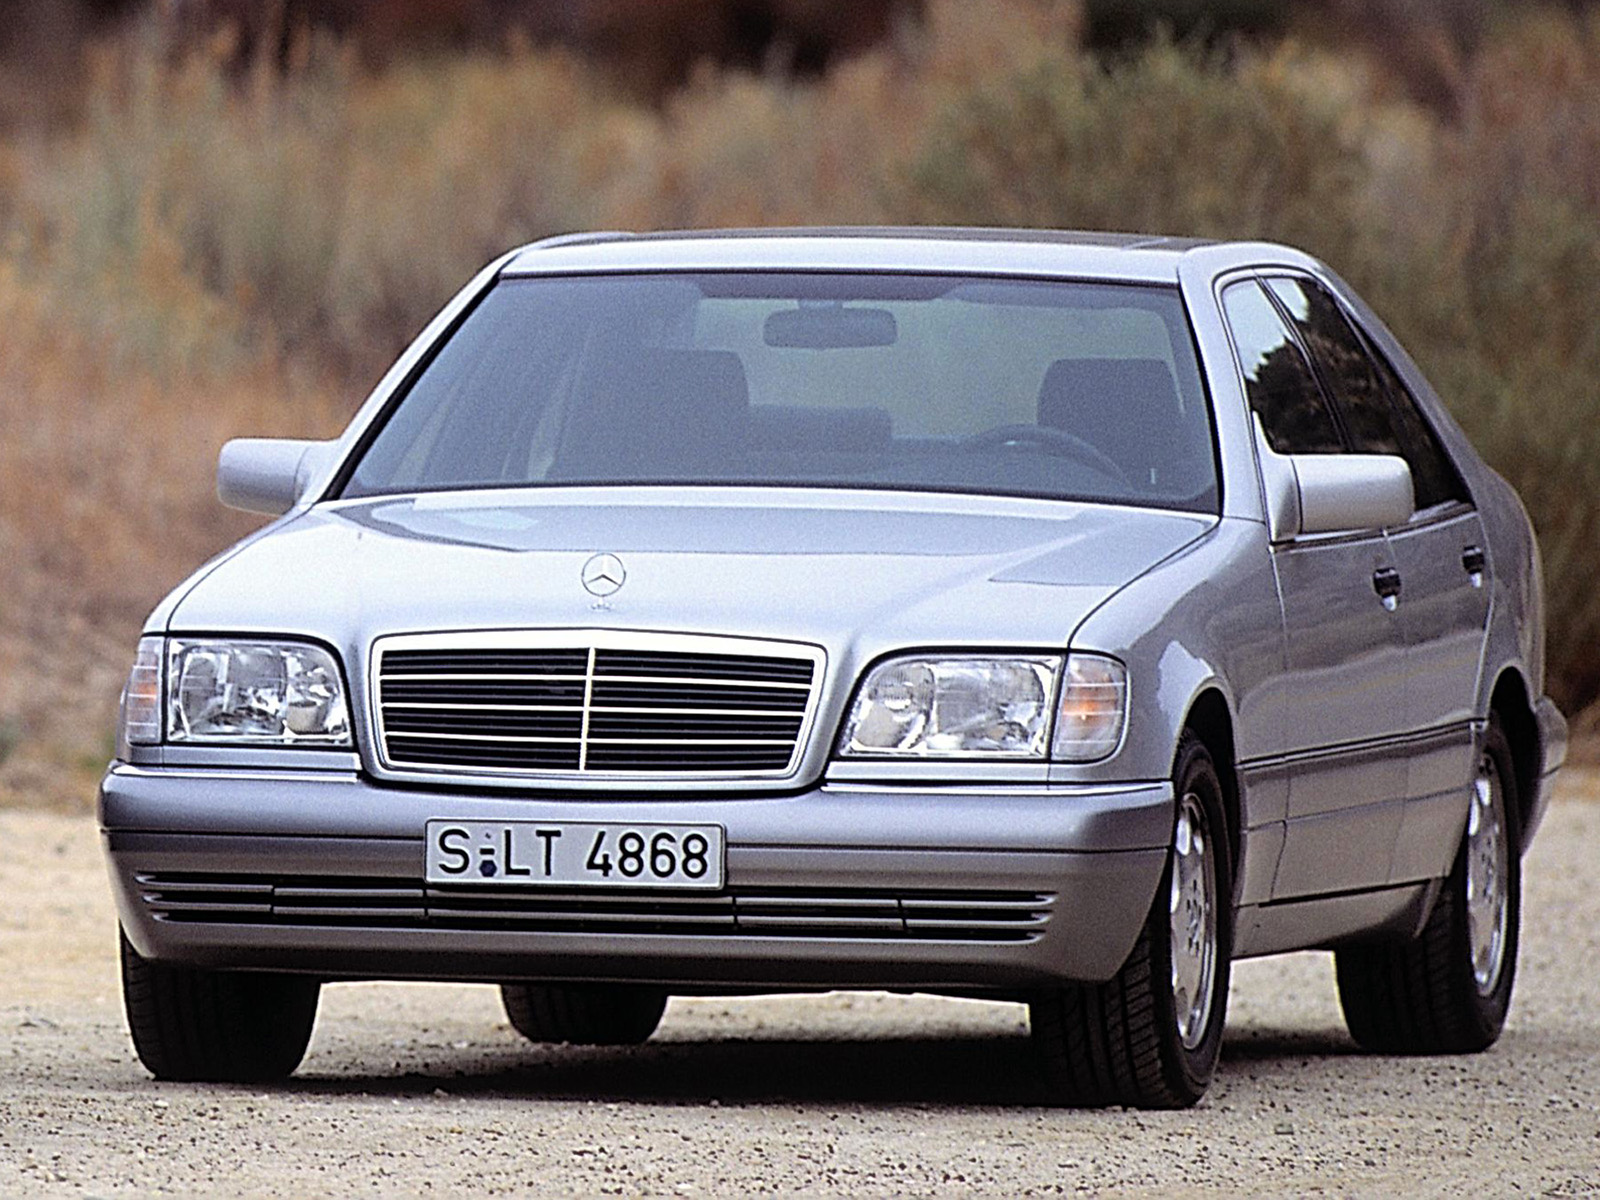 Benz s class w140 600sel or s600 m120 394 hp w140 information - Mercedes Benz S Class W140 Picture 39420 Mercedes Benz Photo